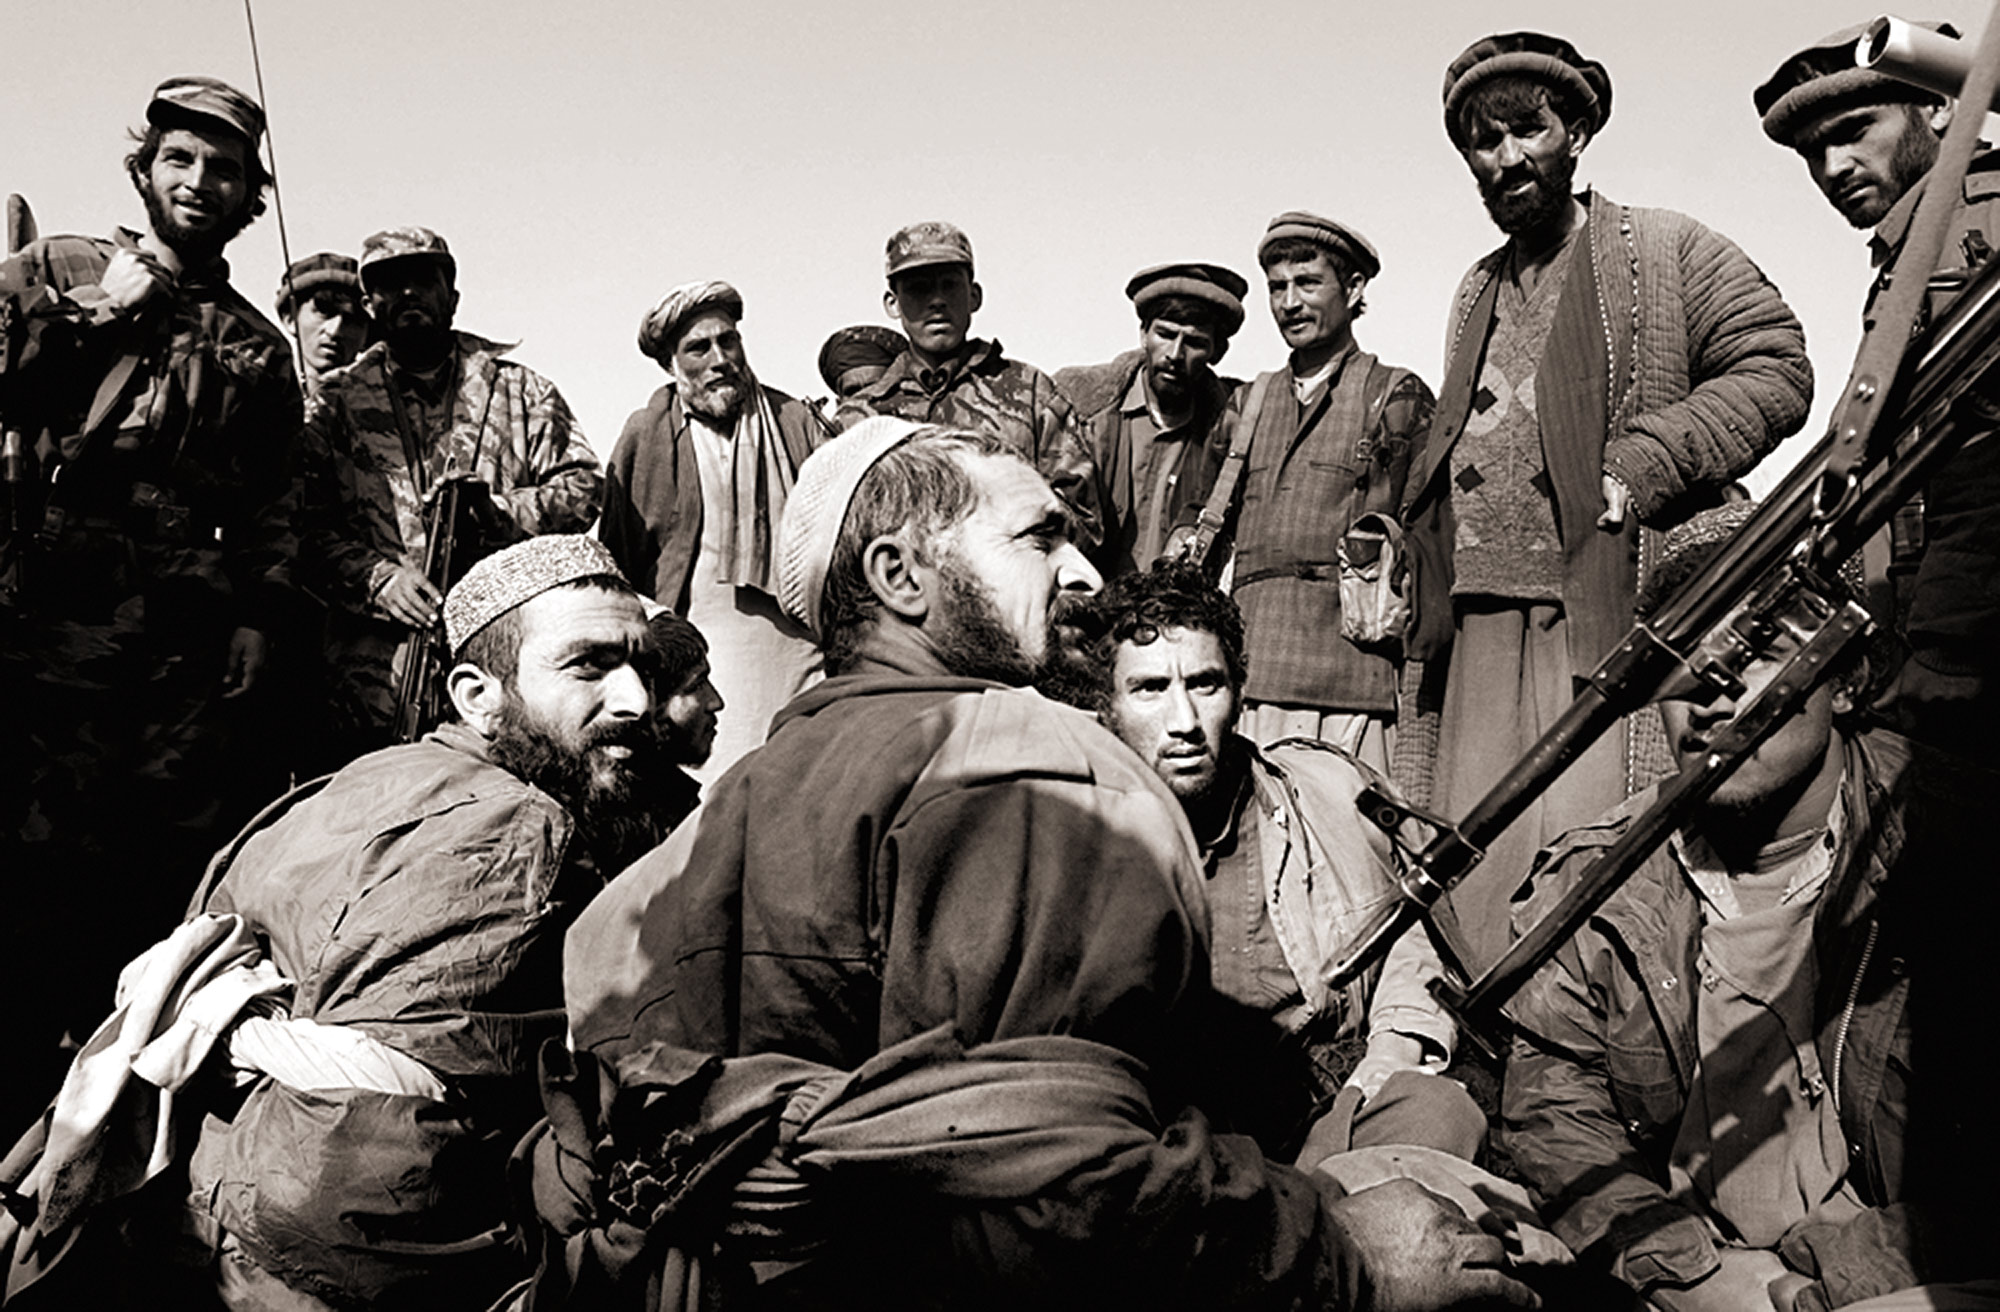 Taliban prisoners Esmatullah, Esmatullah and Abdulghafar plead for their lives from the Northern Alliance soldiers after their capture in Konduz, northern Afghanistan.